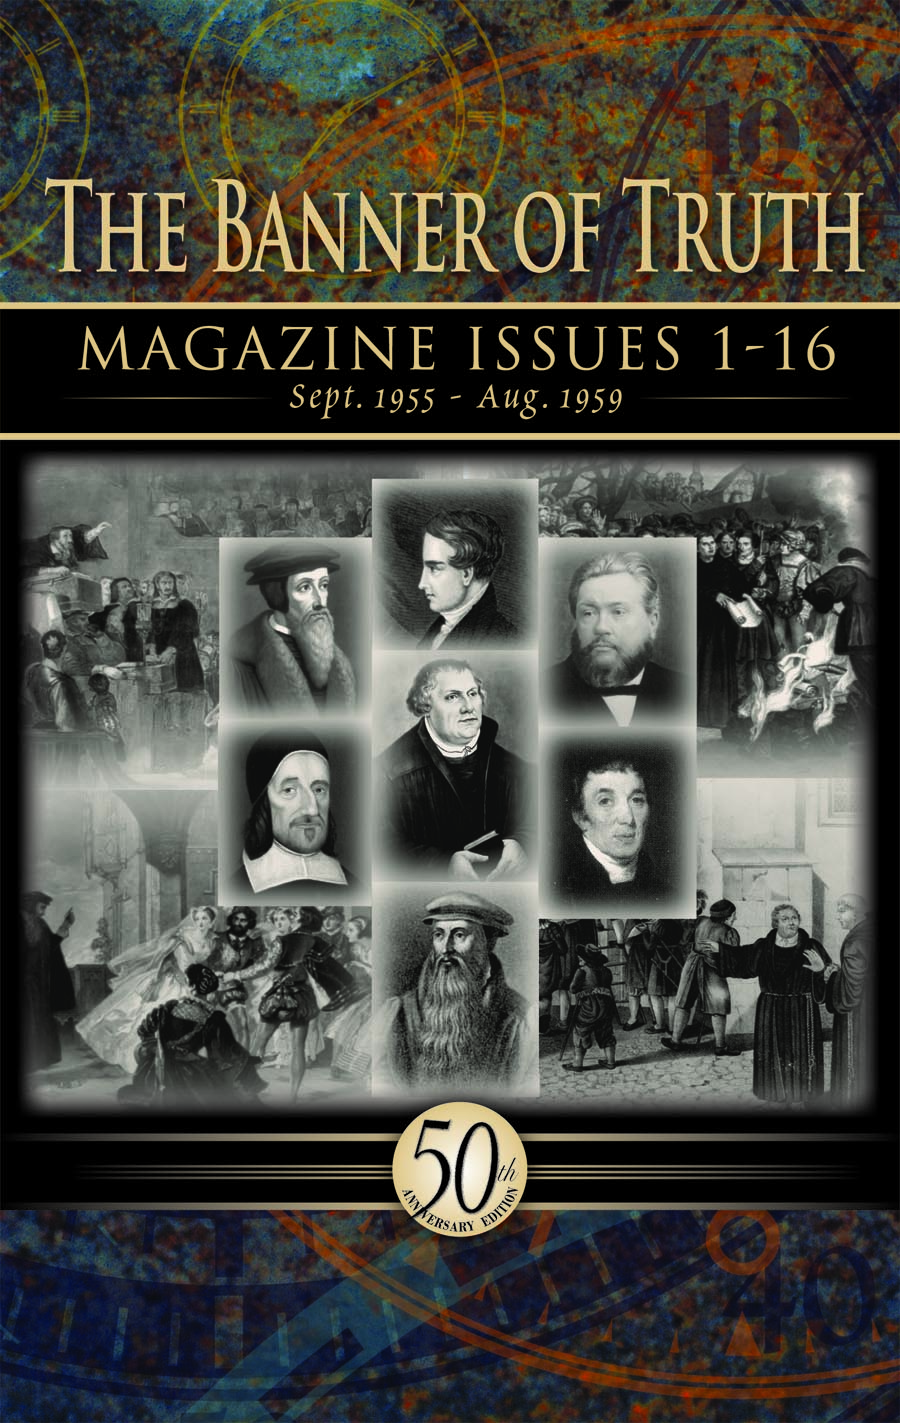 The Banner of Truth Magazine